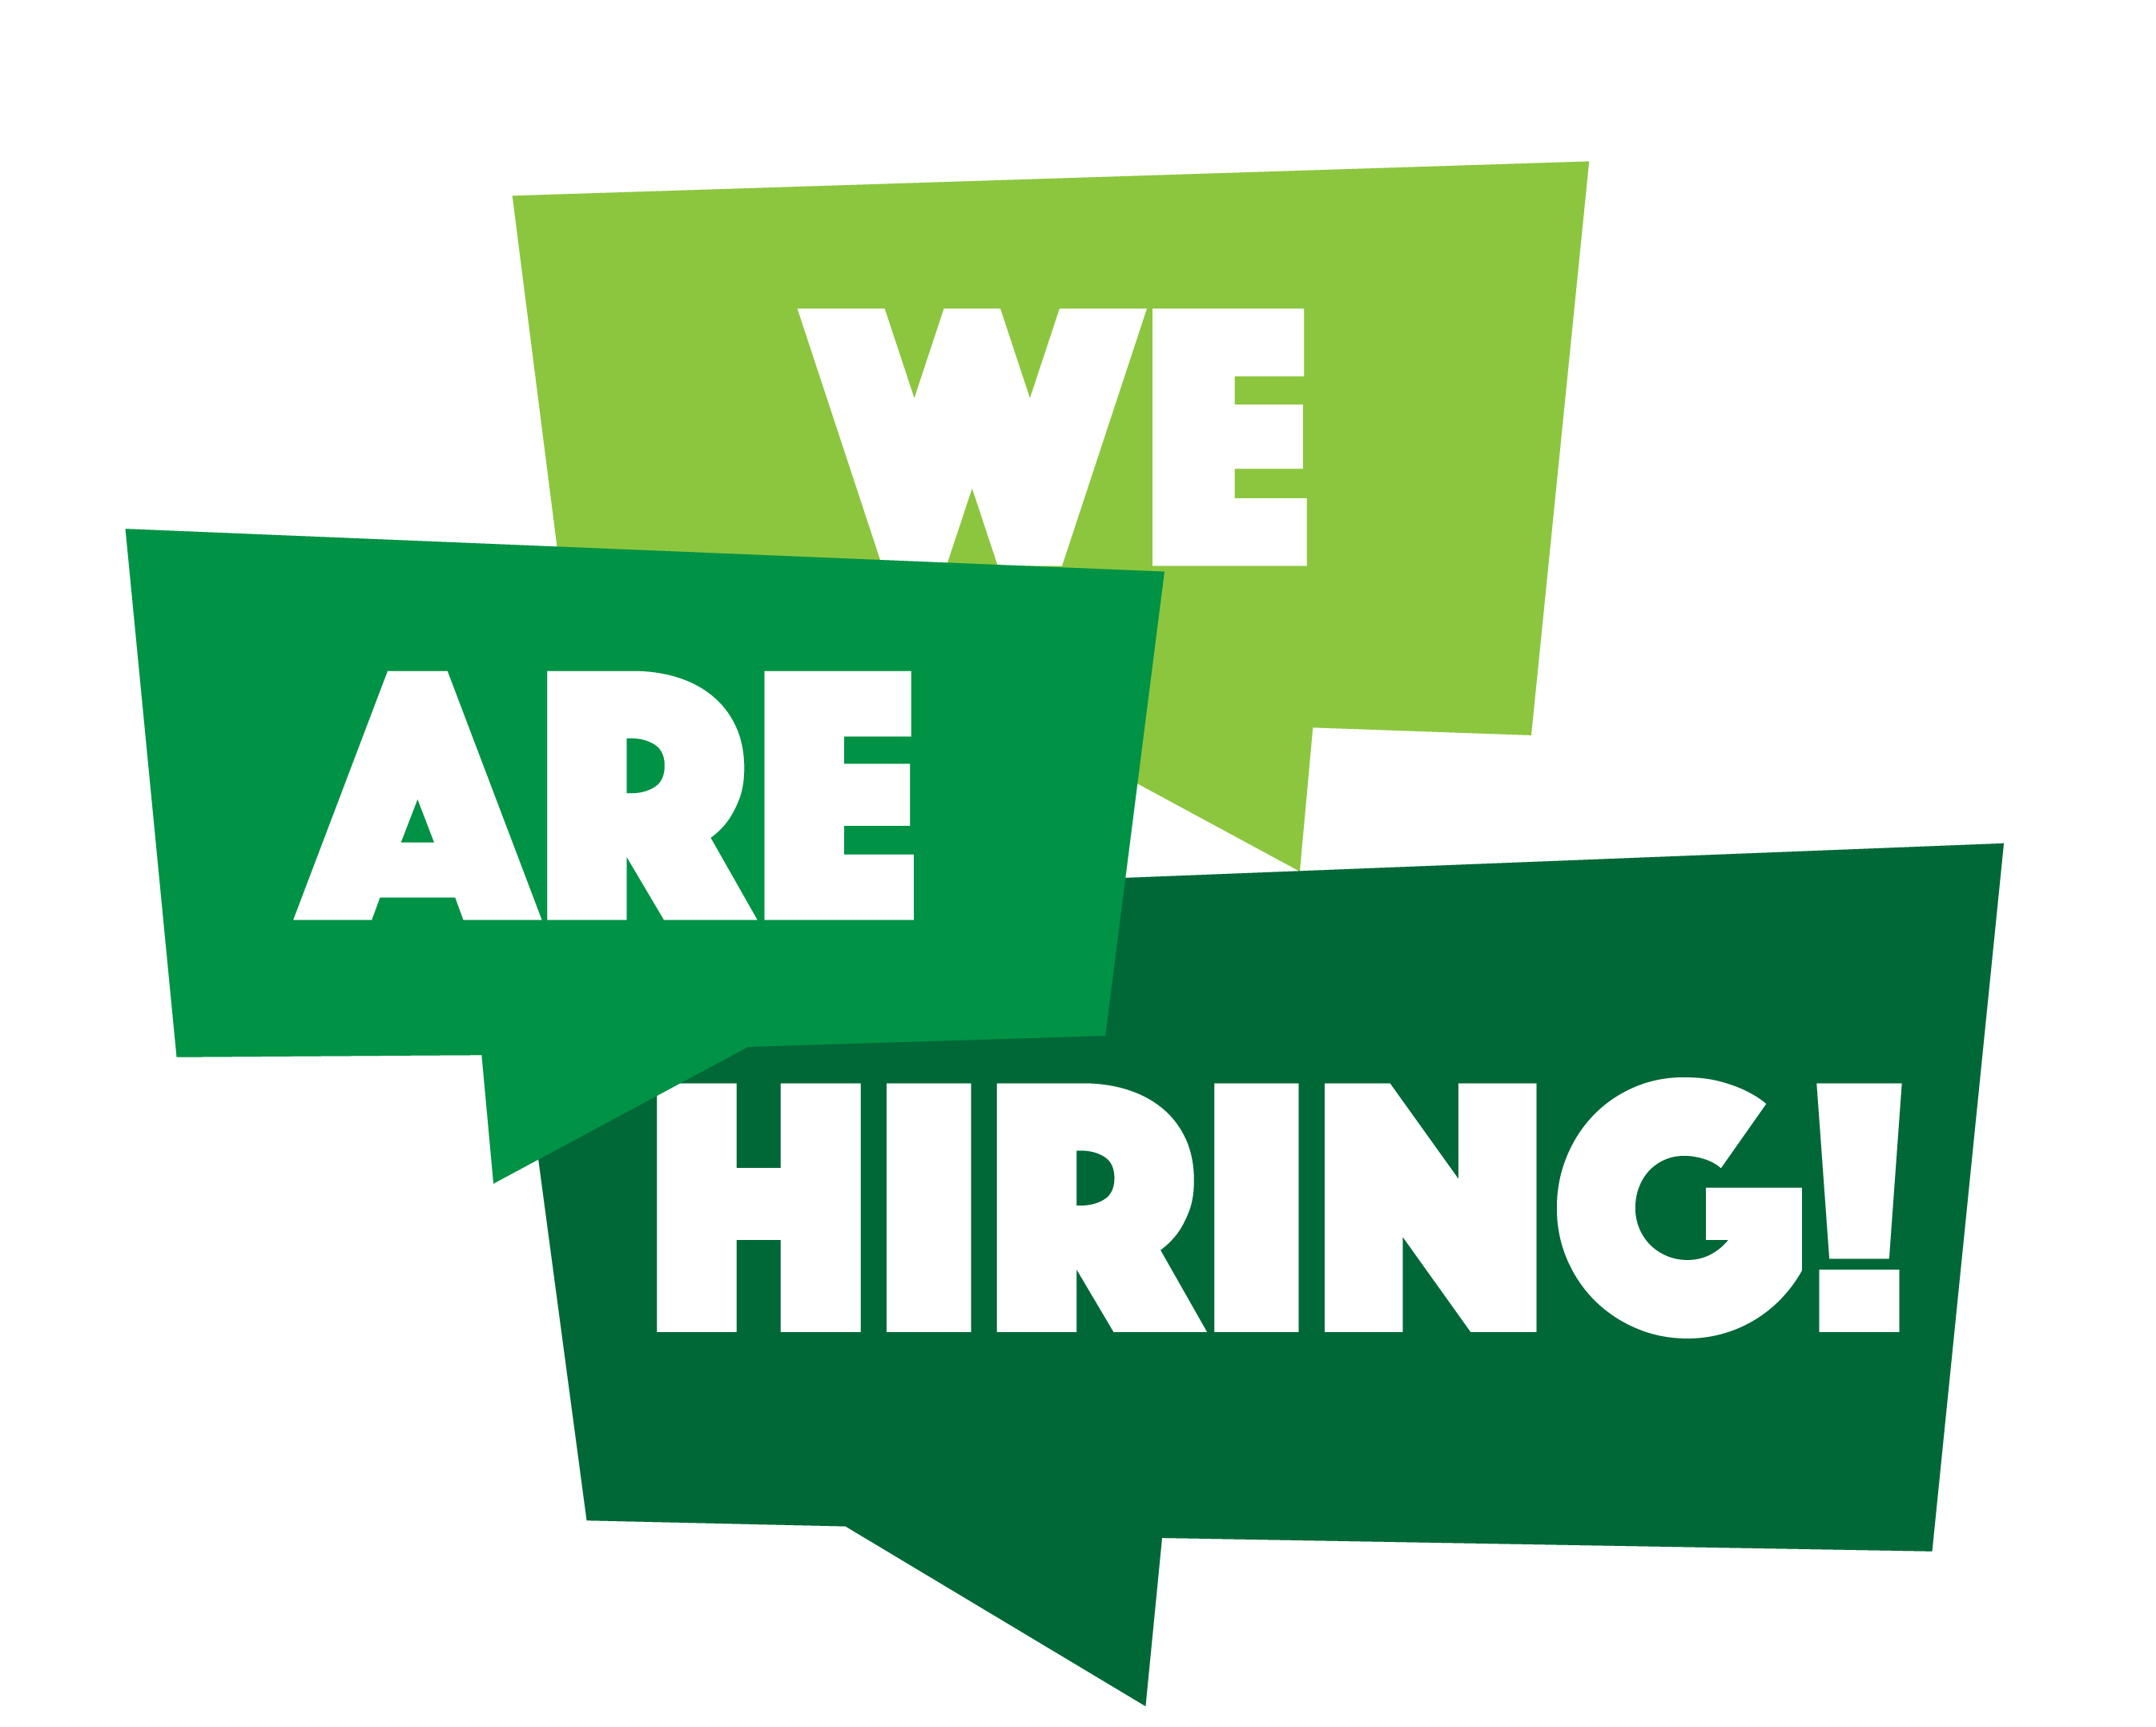 We-Are-Hiring-Graphic-Green-Clear-Background